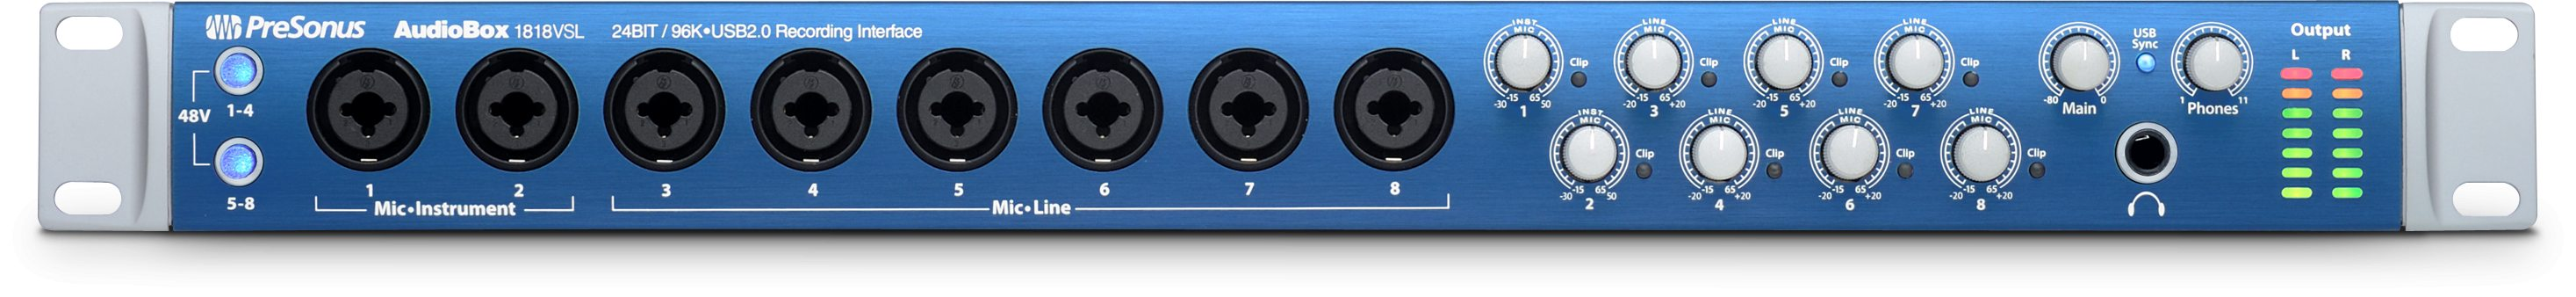 Image of   Presonus AudioBox 1818 VSL